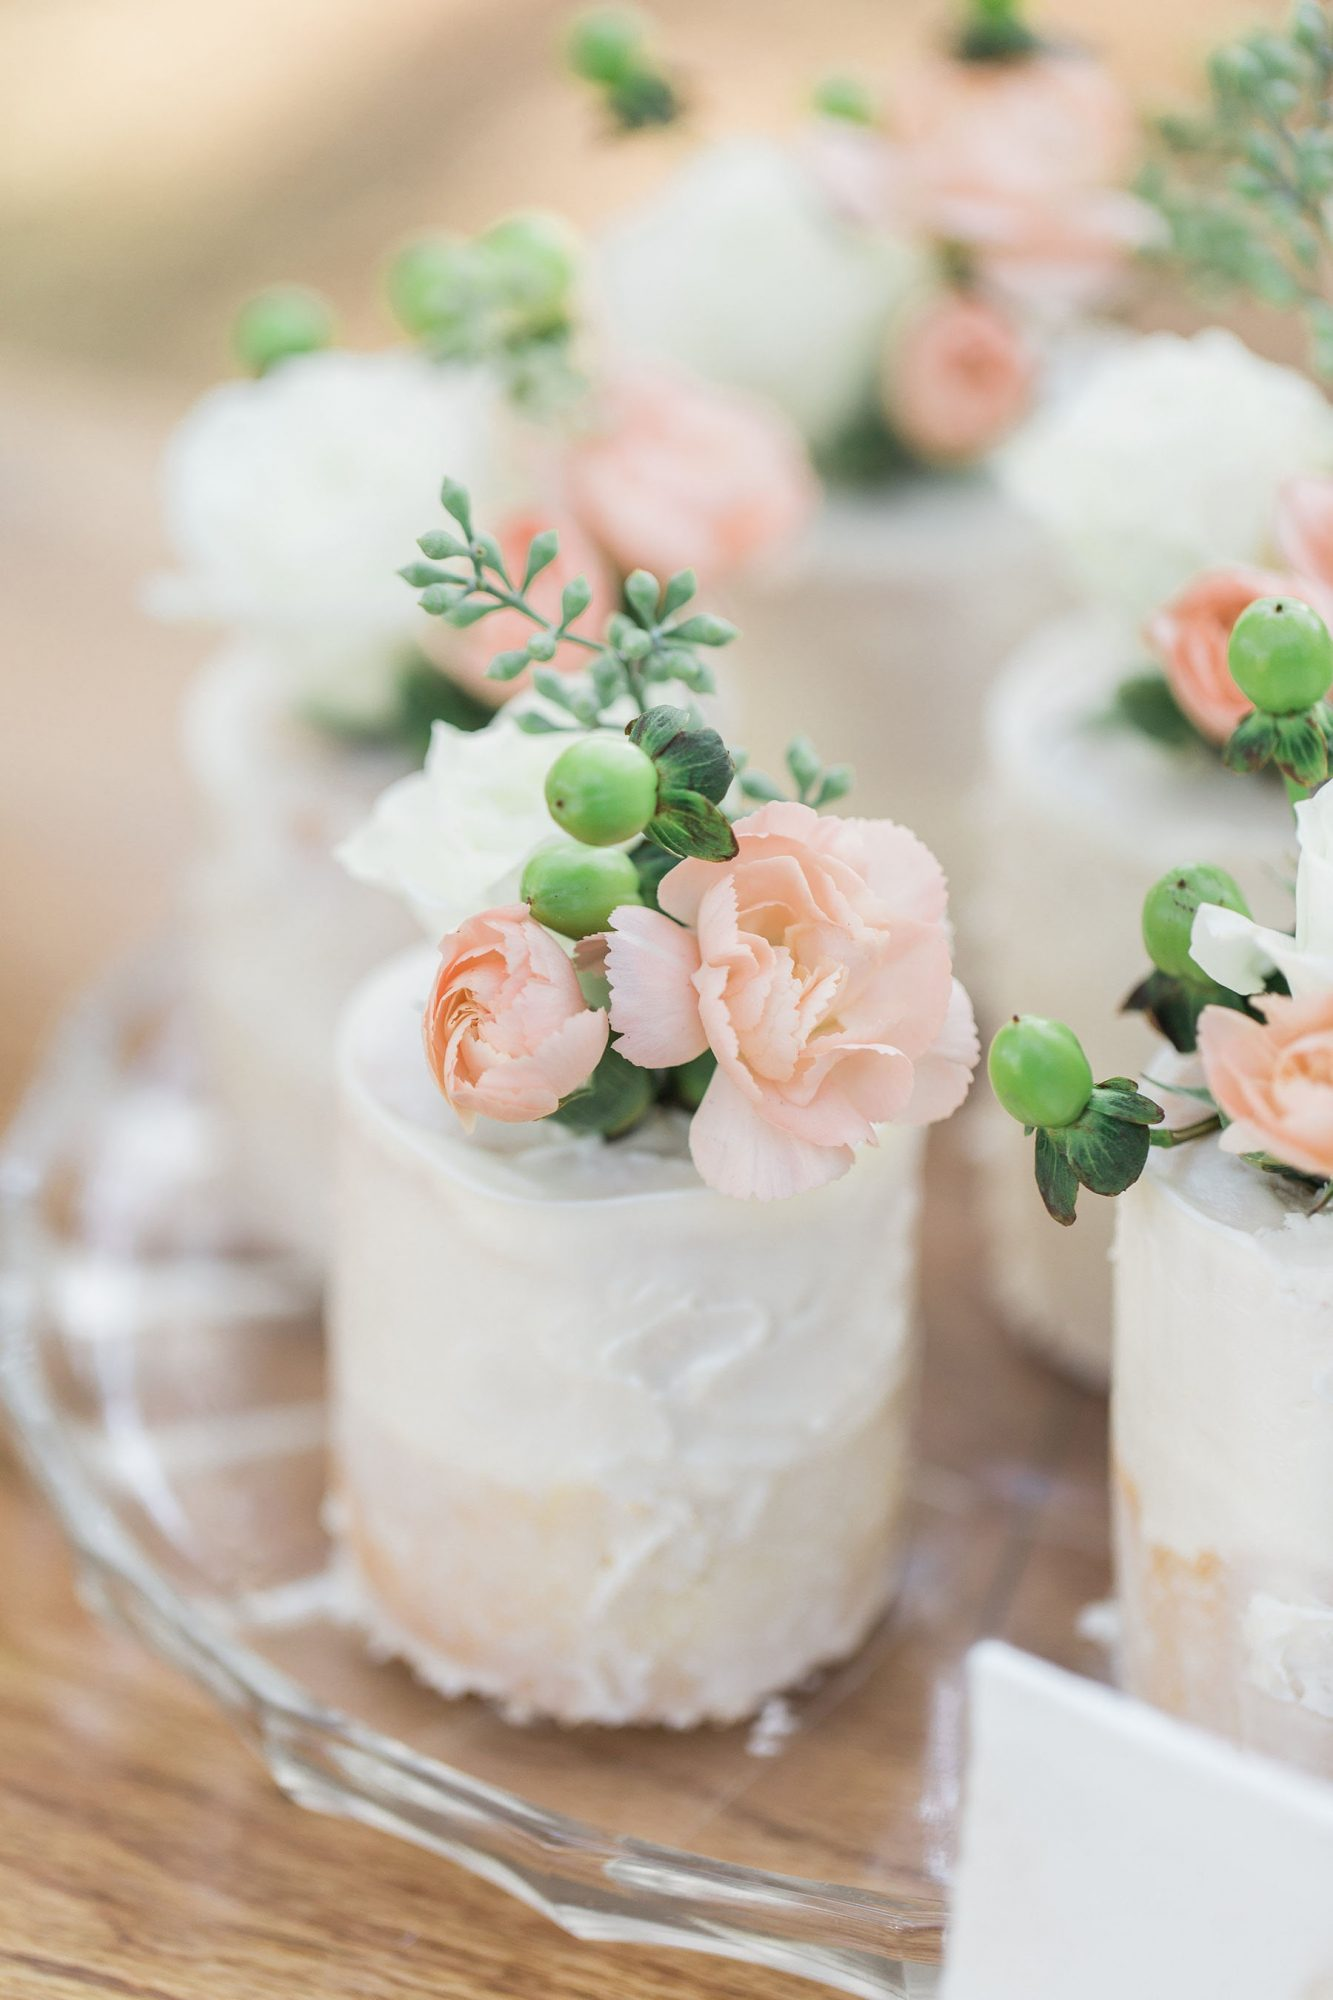 Mini Individual Wedding Cake